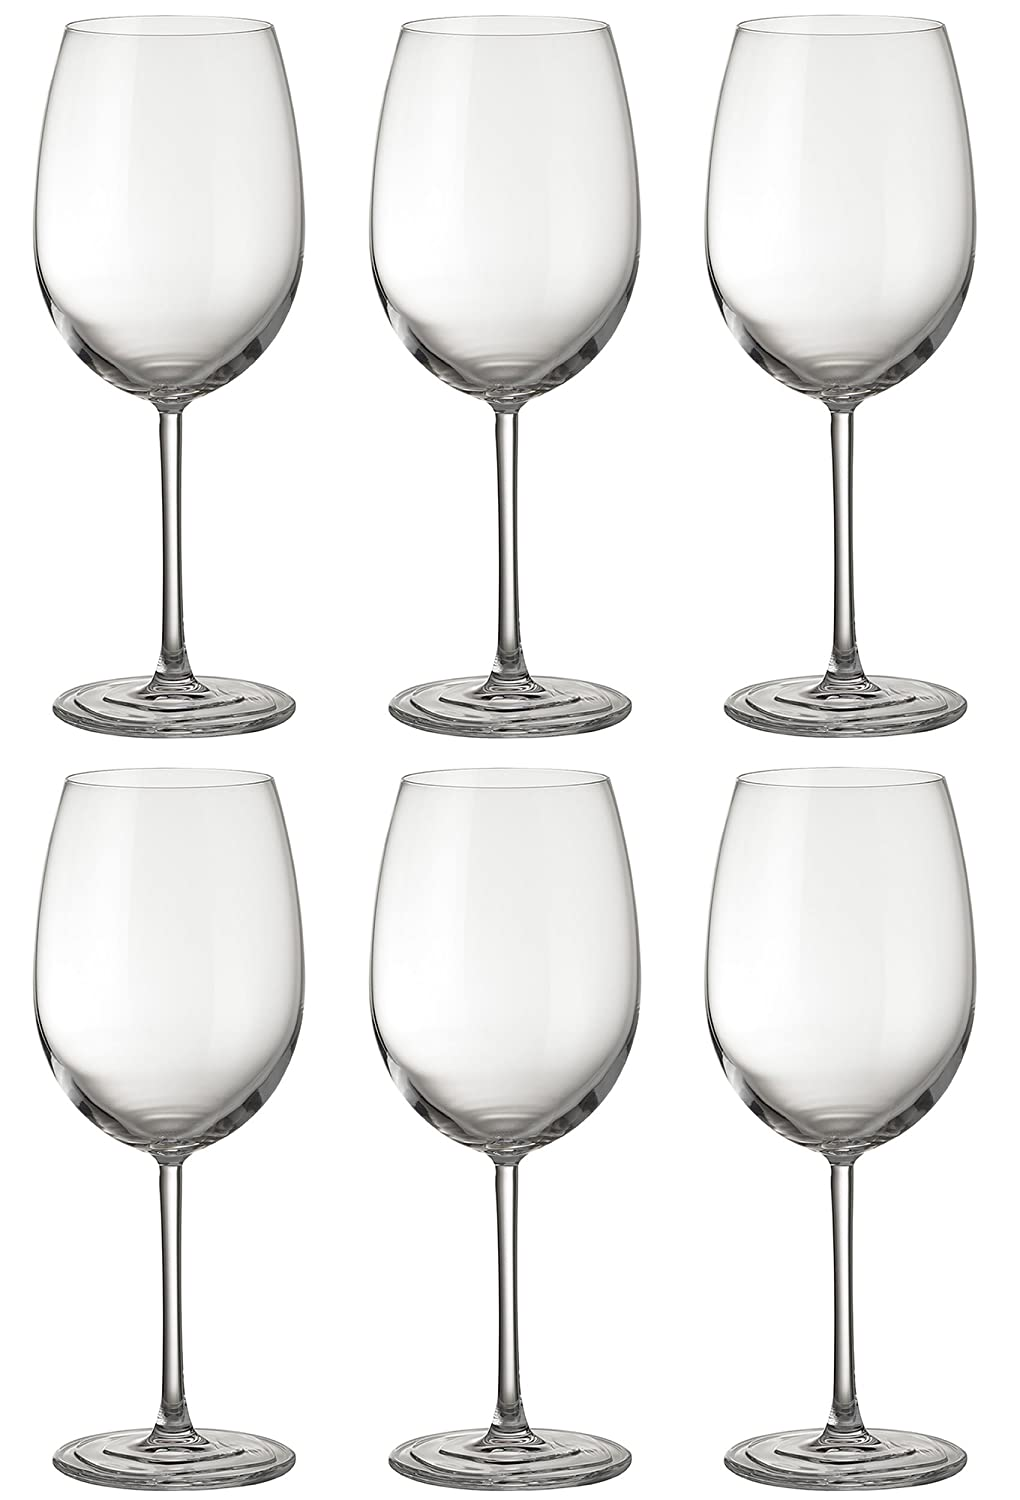 d26ac78e5401 Jamie oliver waves champagne flute oz tall ultra contemporary crystal  prosecco glass jpg 1020x1500 Champagne contemporary